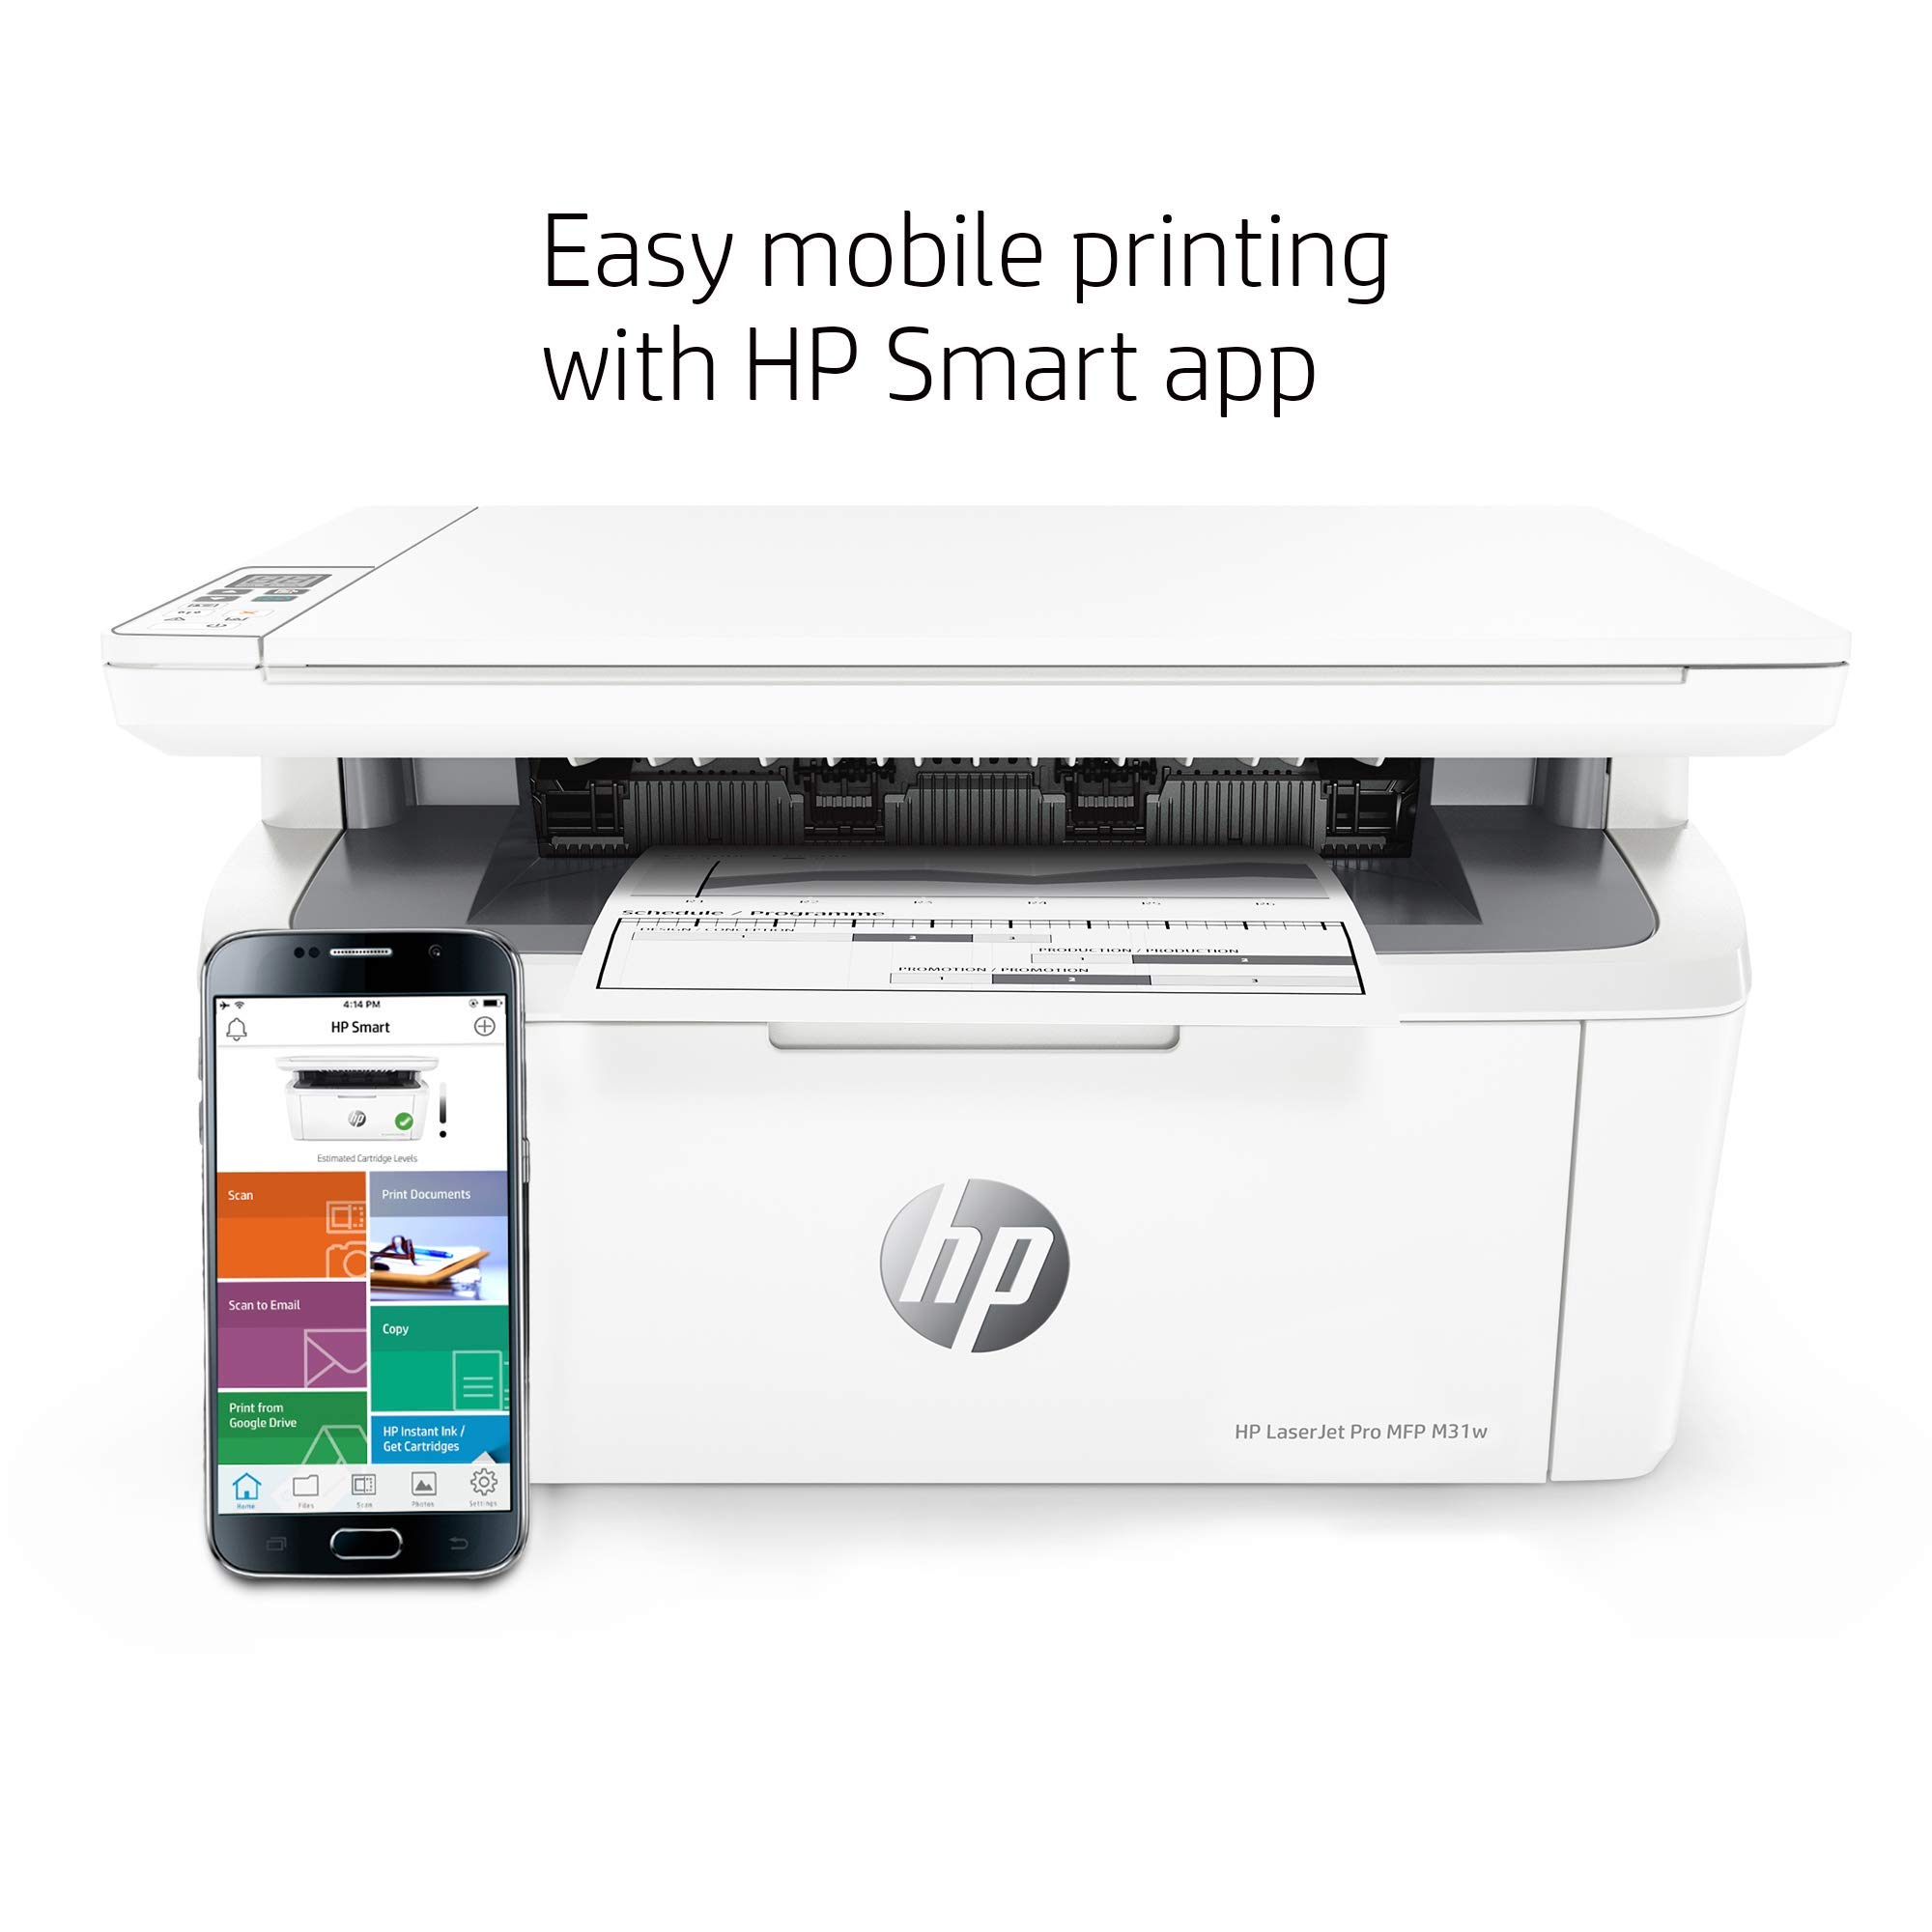 HP Laserjet Pro M31w All-in-One Wireless Monochrome Laser Printer with Mobile Printing (Y5S55A) (Renewed) by HP (Image #7)